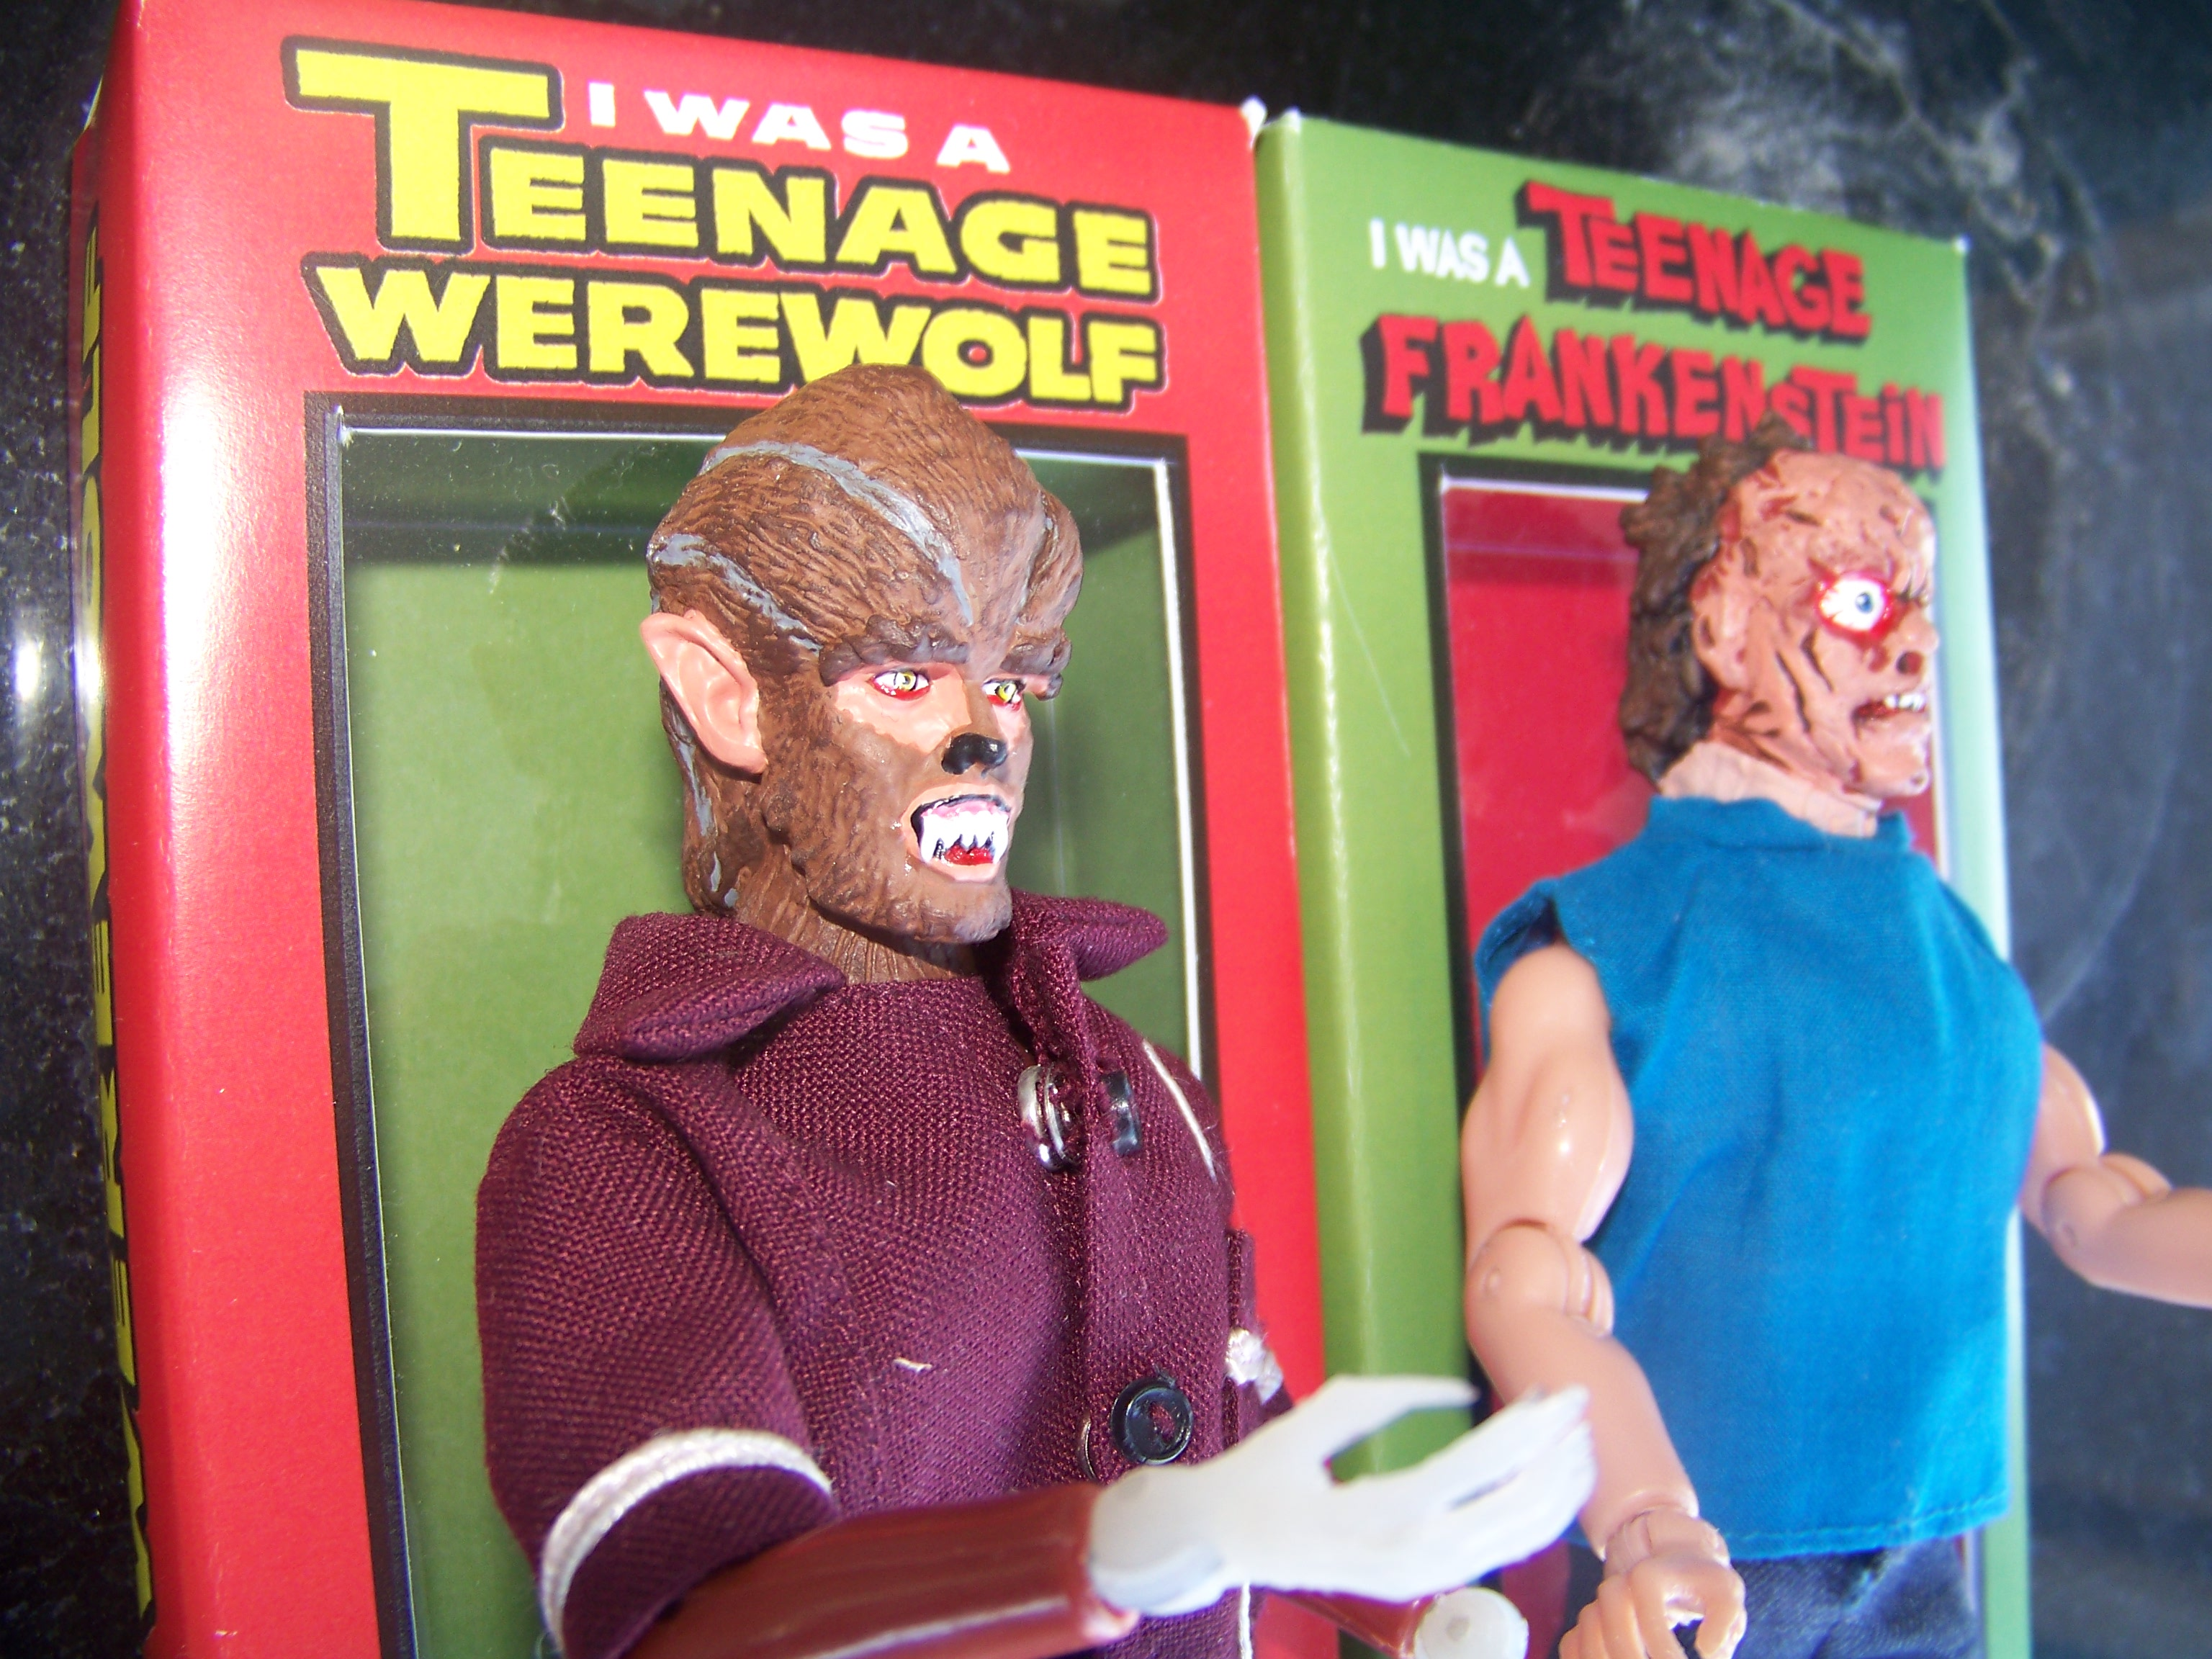 Amazing I Was A Teenage Werewolf Pictures & Backgrounds